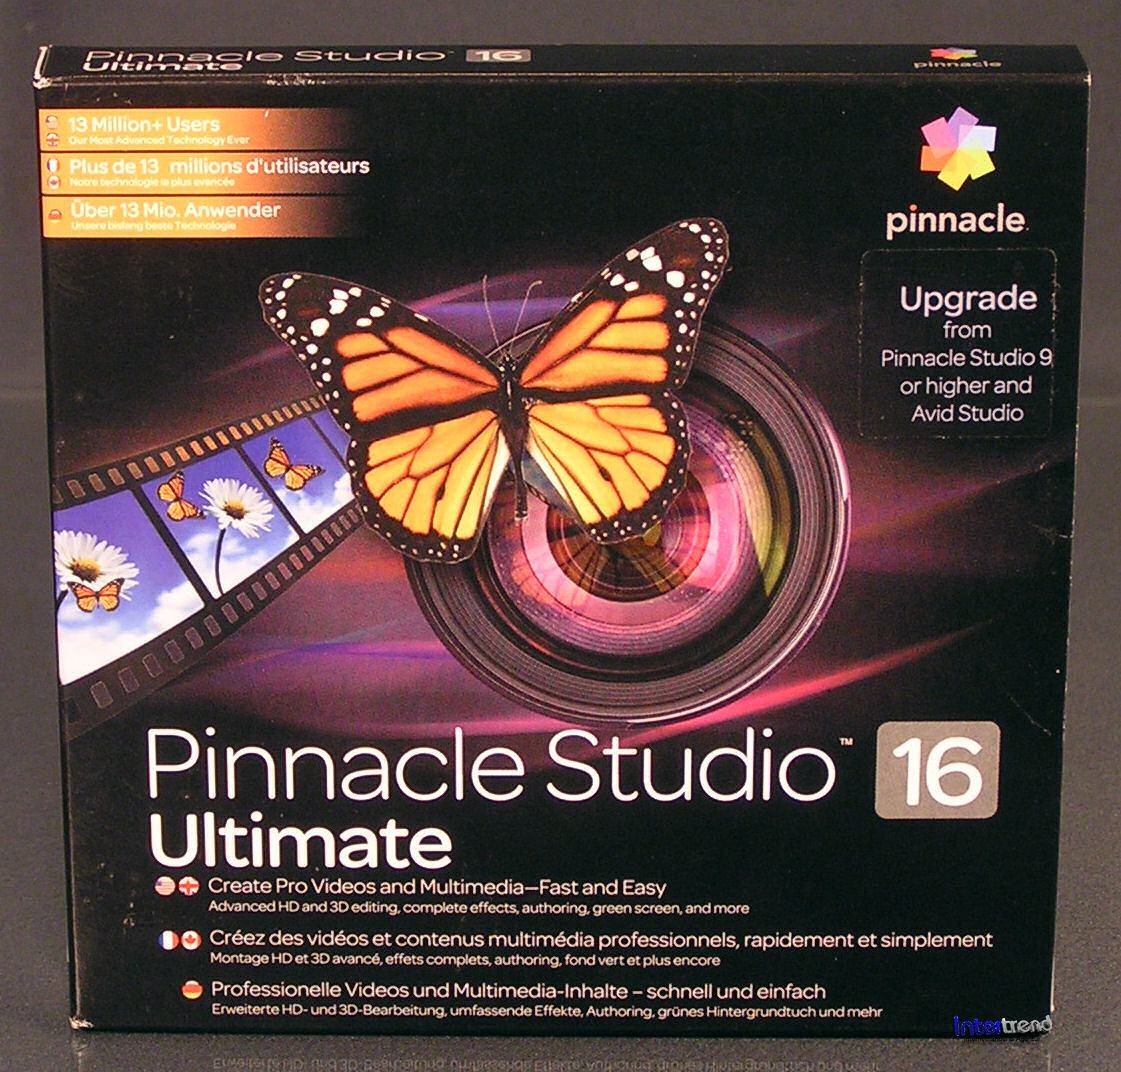 B pinnacle studio 16 ultimate/b pinnacle/b studio/b ultimate/b ist da